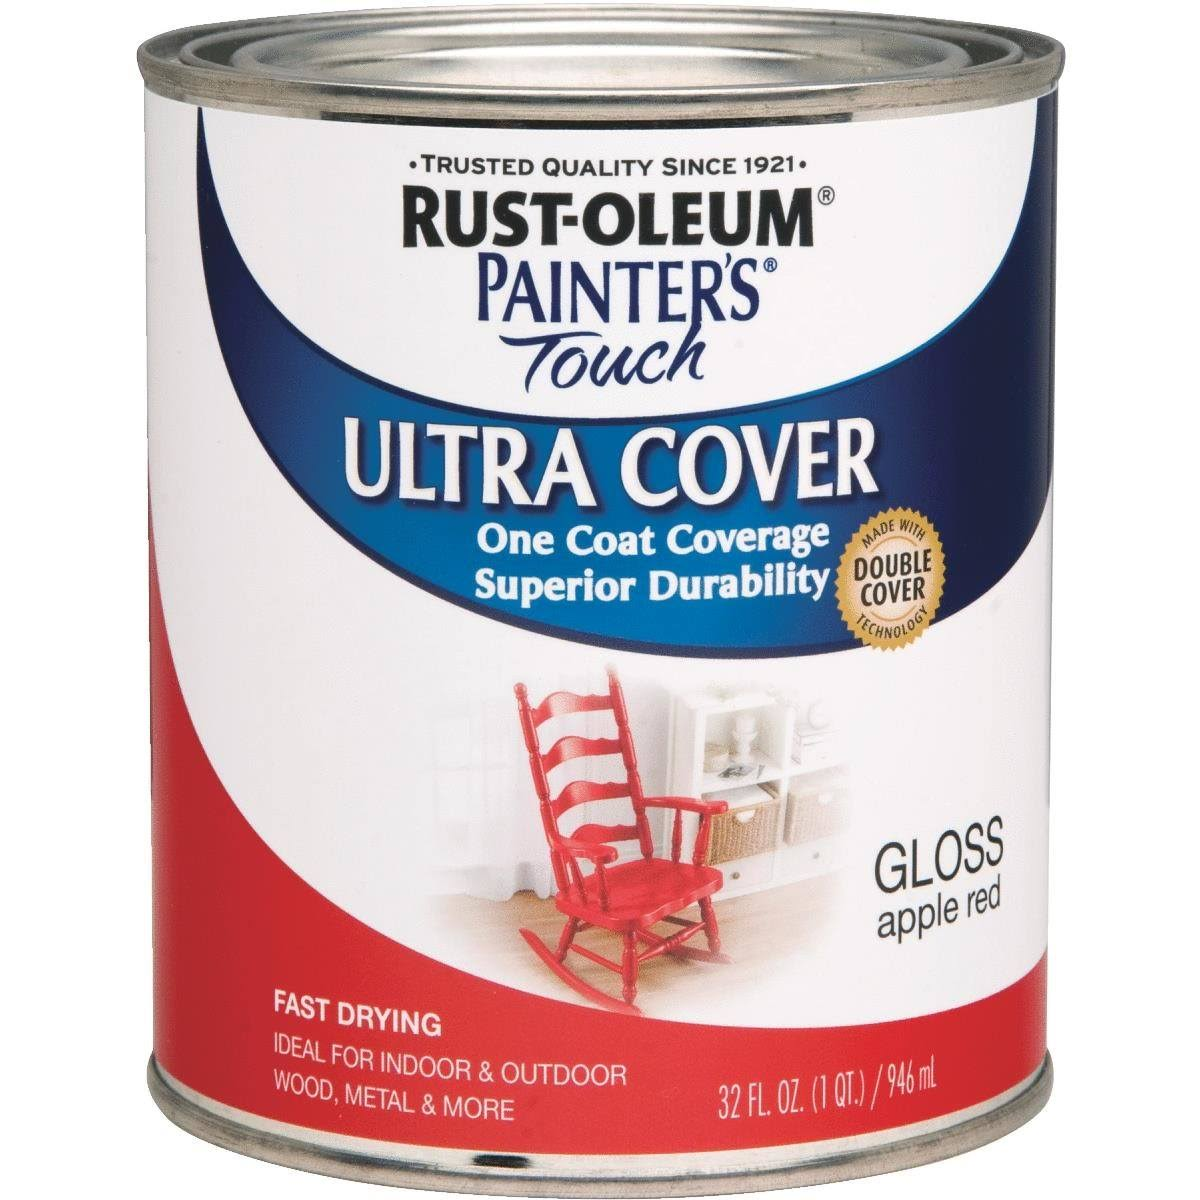 Rust-Oleum Painters Touch Latex - Apple Red